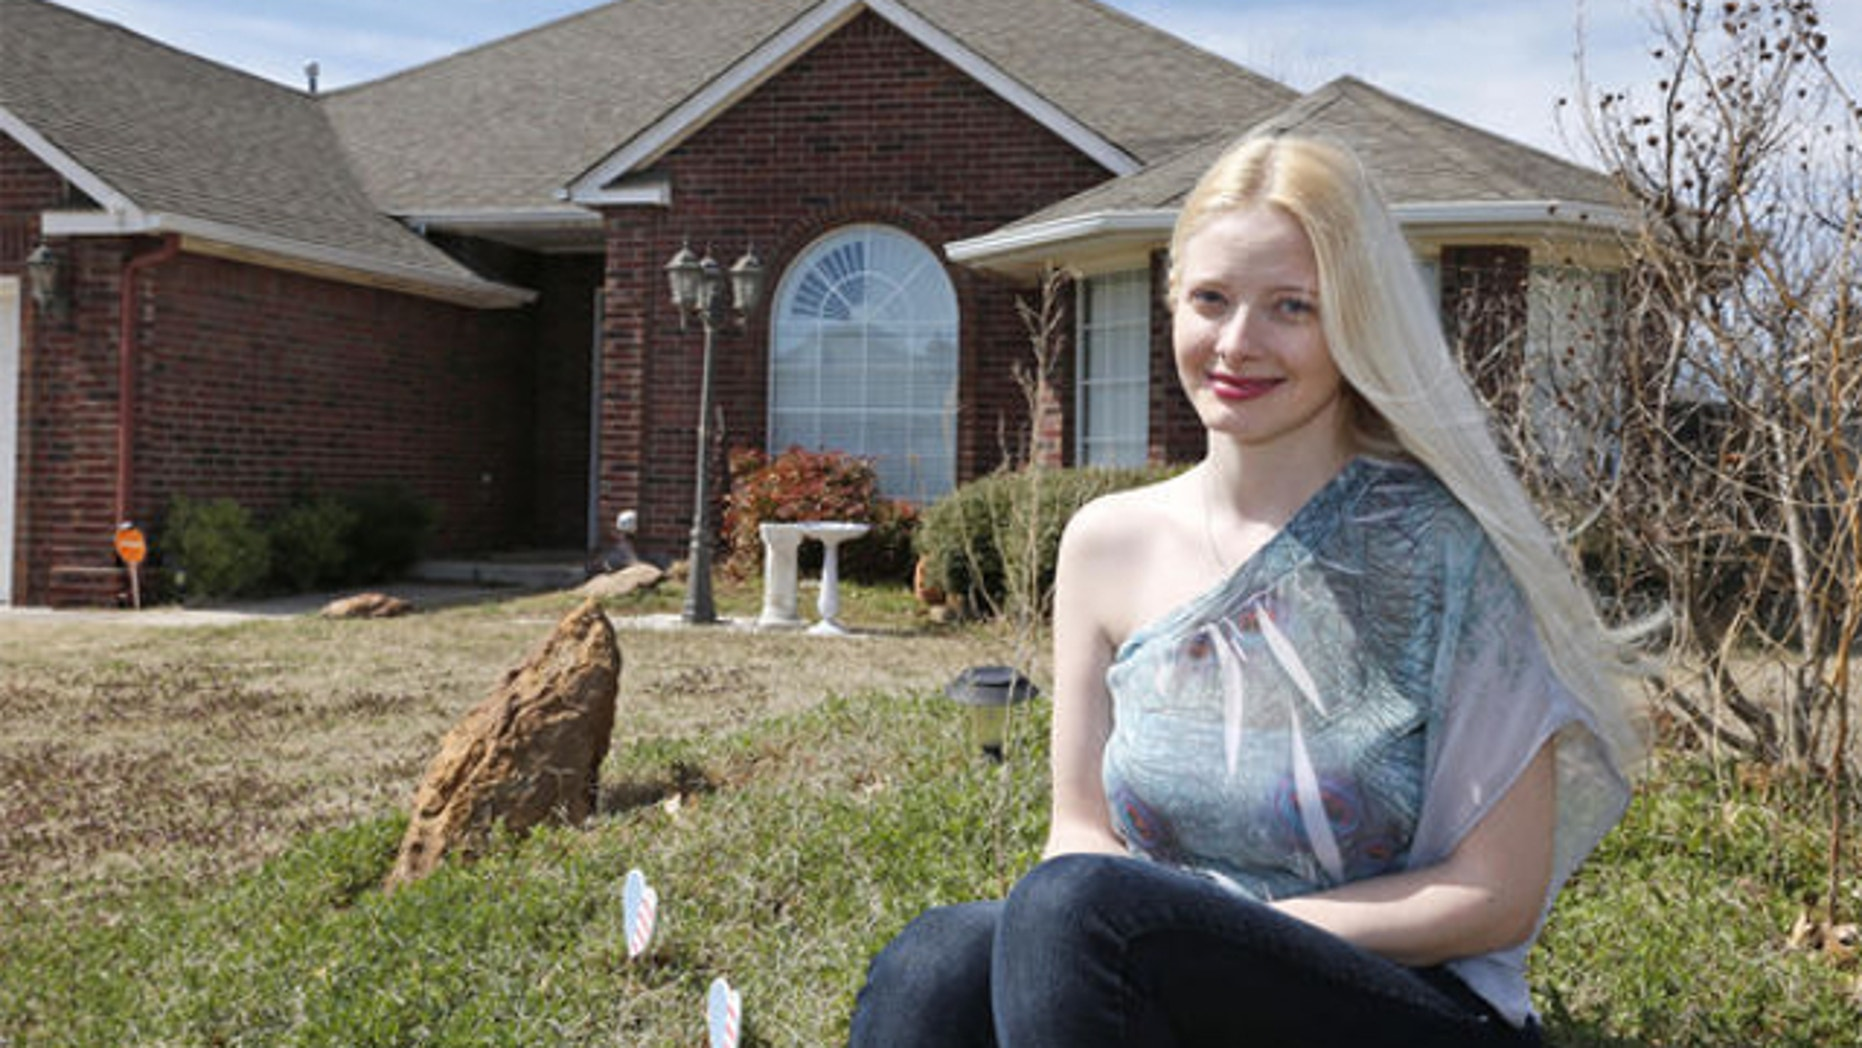 March 17, 2014: Jennifer Hunt poses for a photo outside her home in Noble, Okla. Hunt, whose husband was a soldier killed in the Fort Hood shooting, could get relief from a $6,000 tax bill under a measure Oklahoma legislators are considering that would grant some families benefits similar to those given after acts of terrorism.